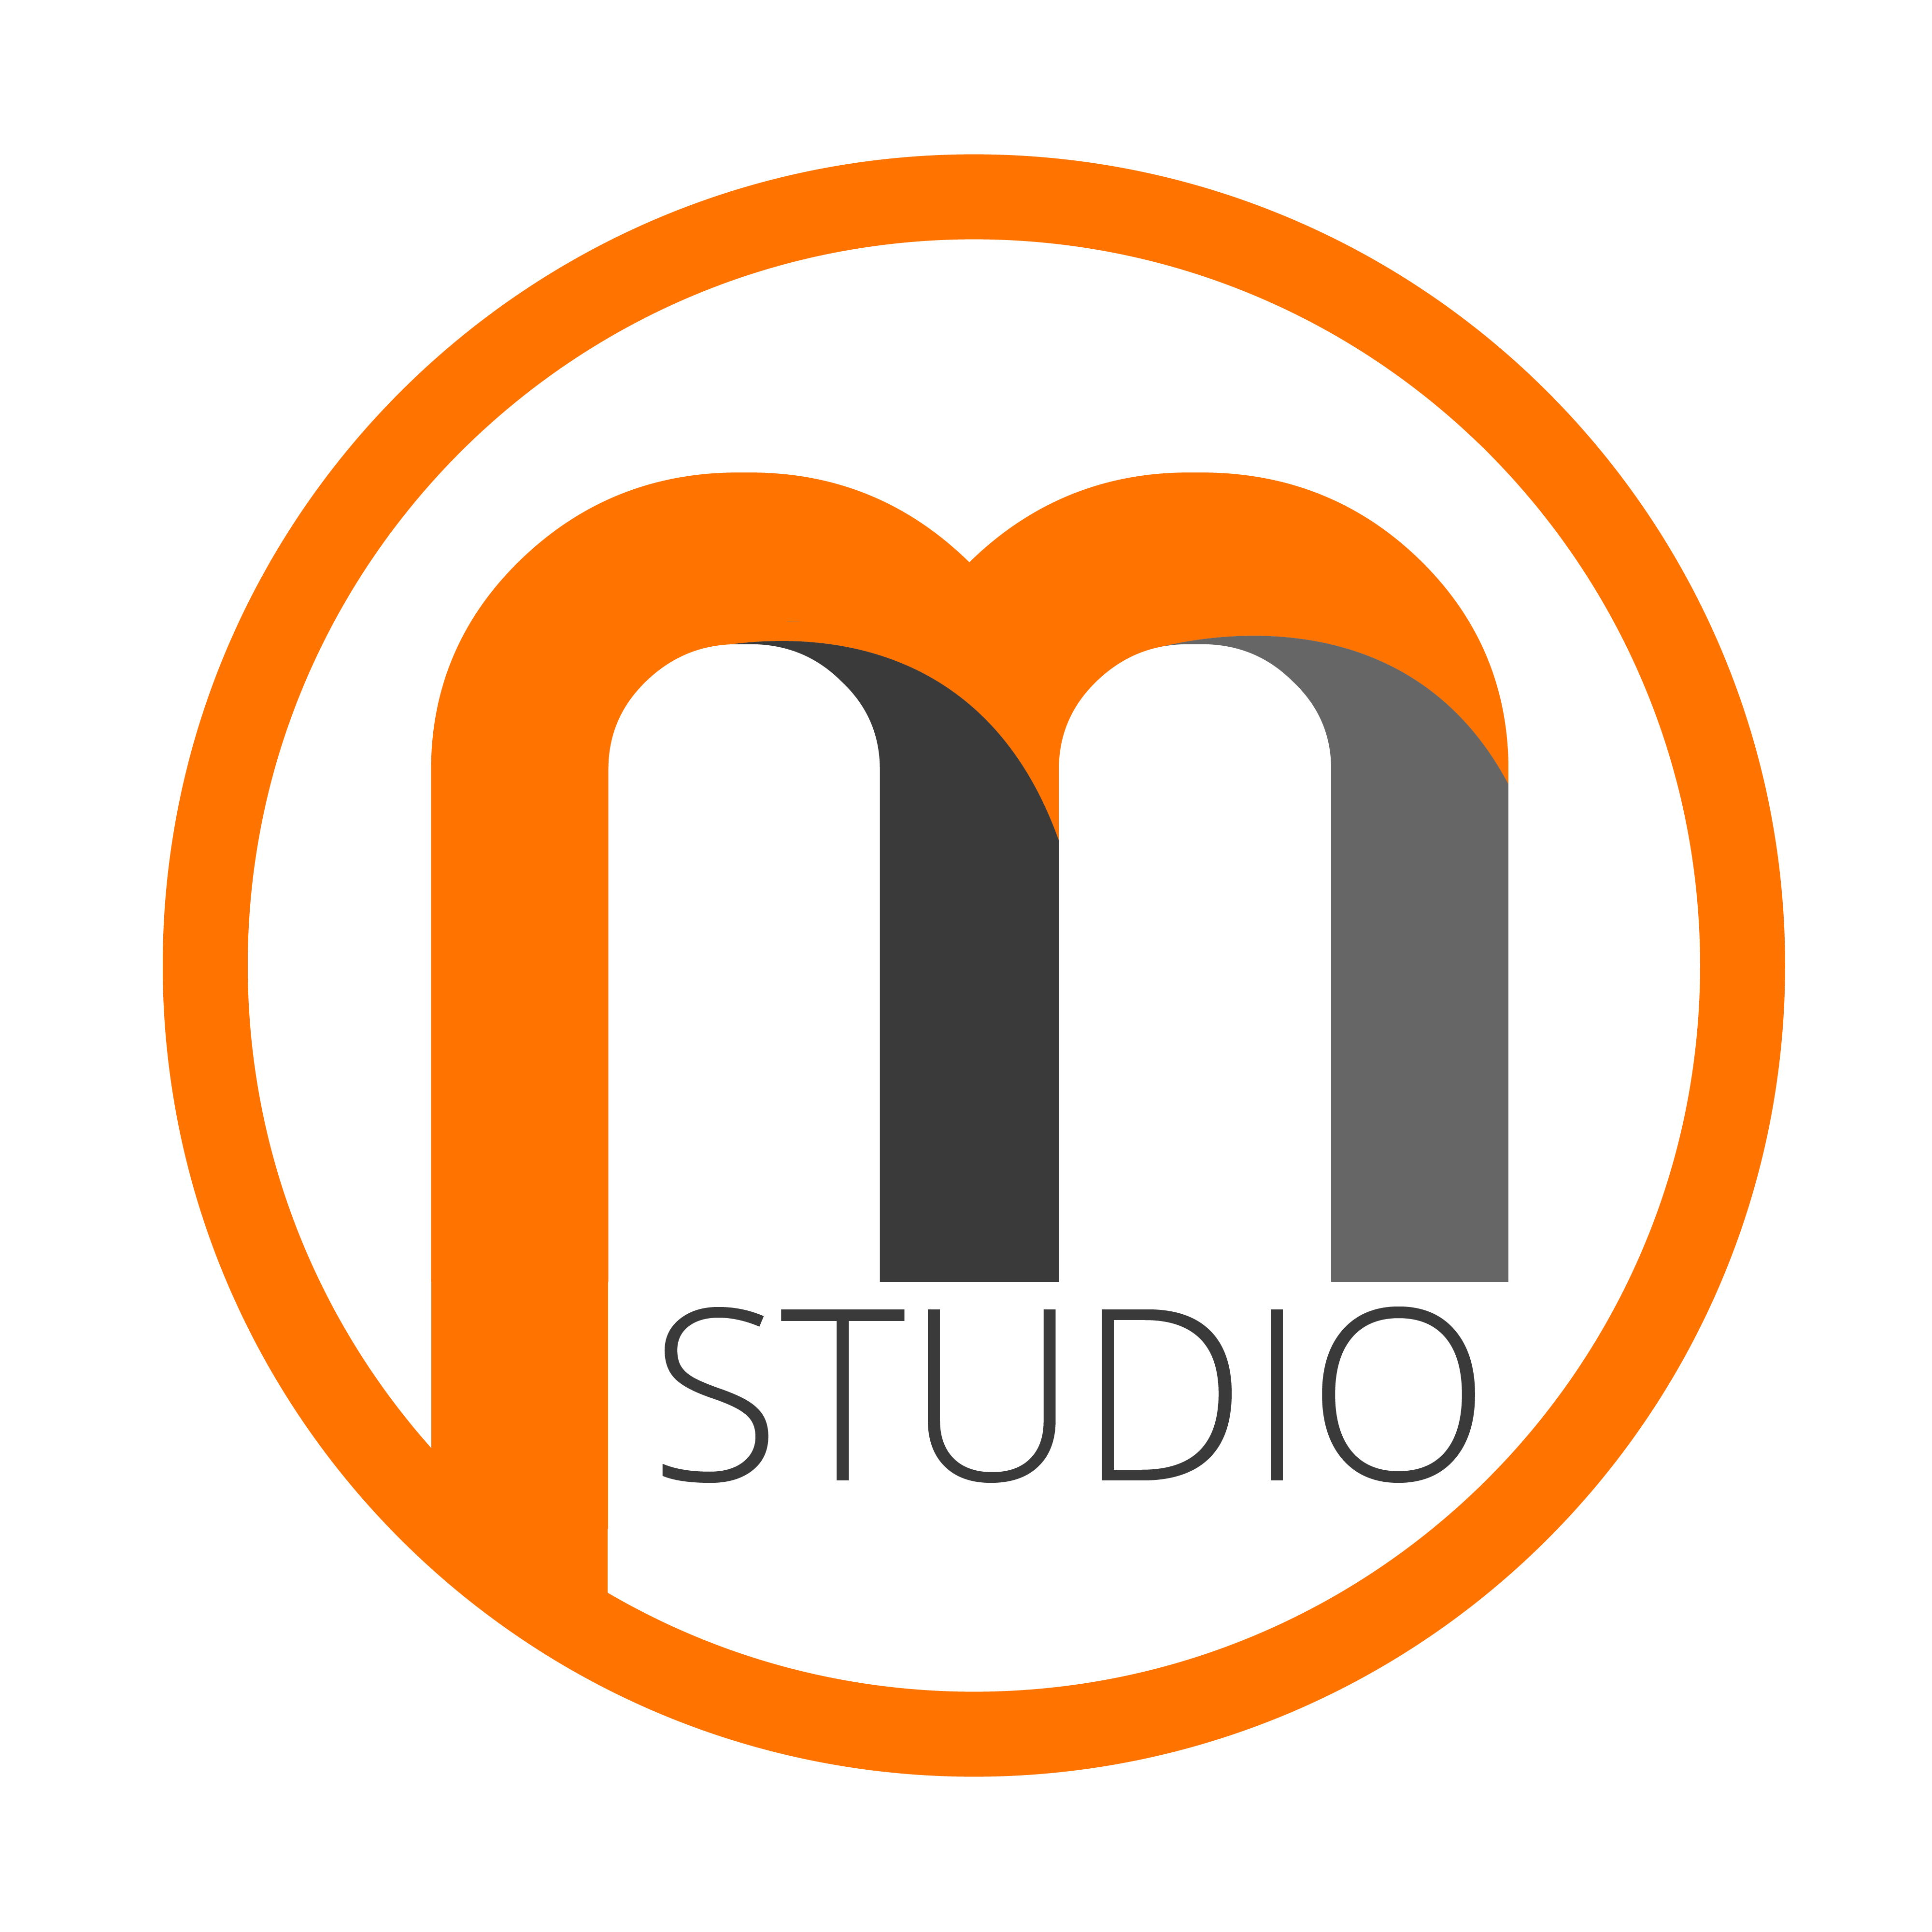 Logo m png. Photography brand photo studio